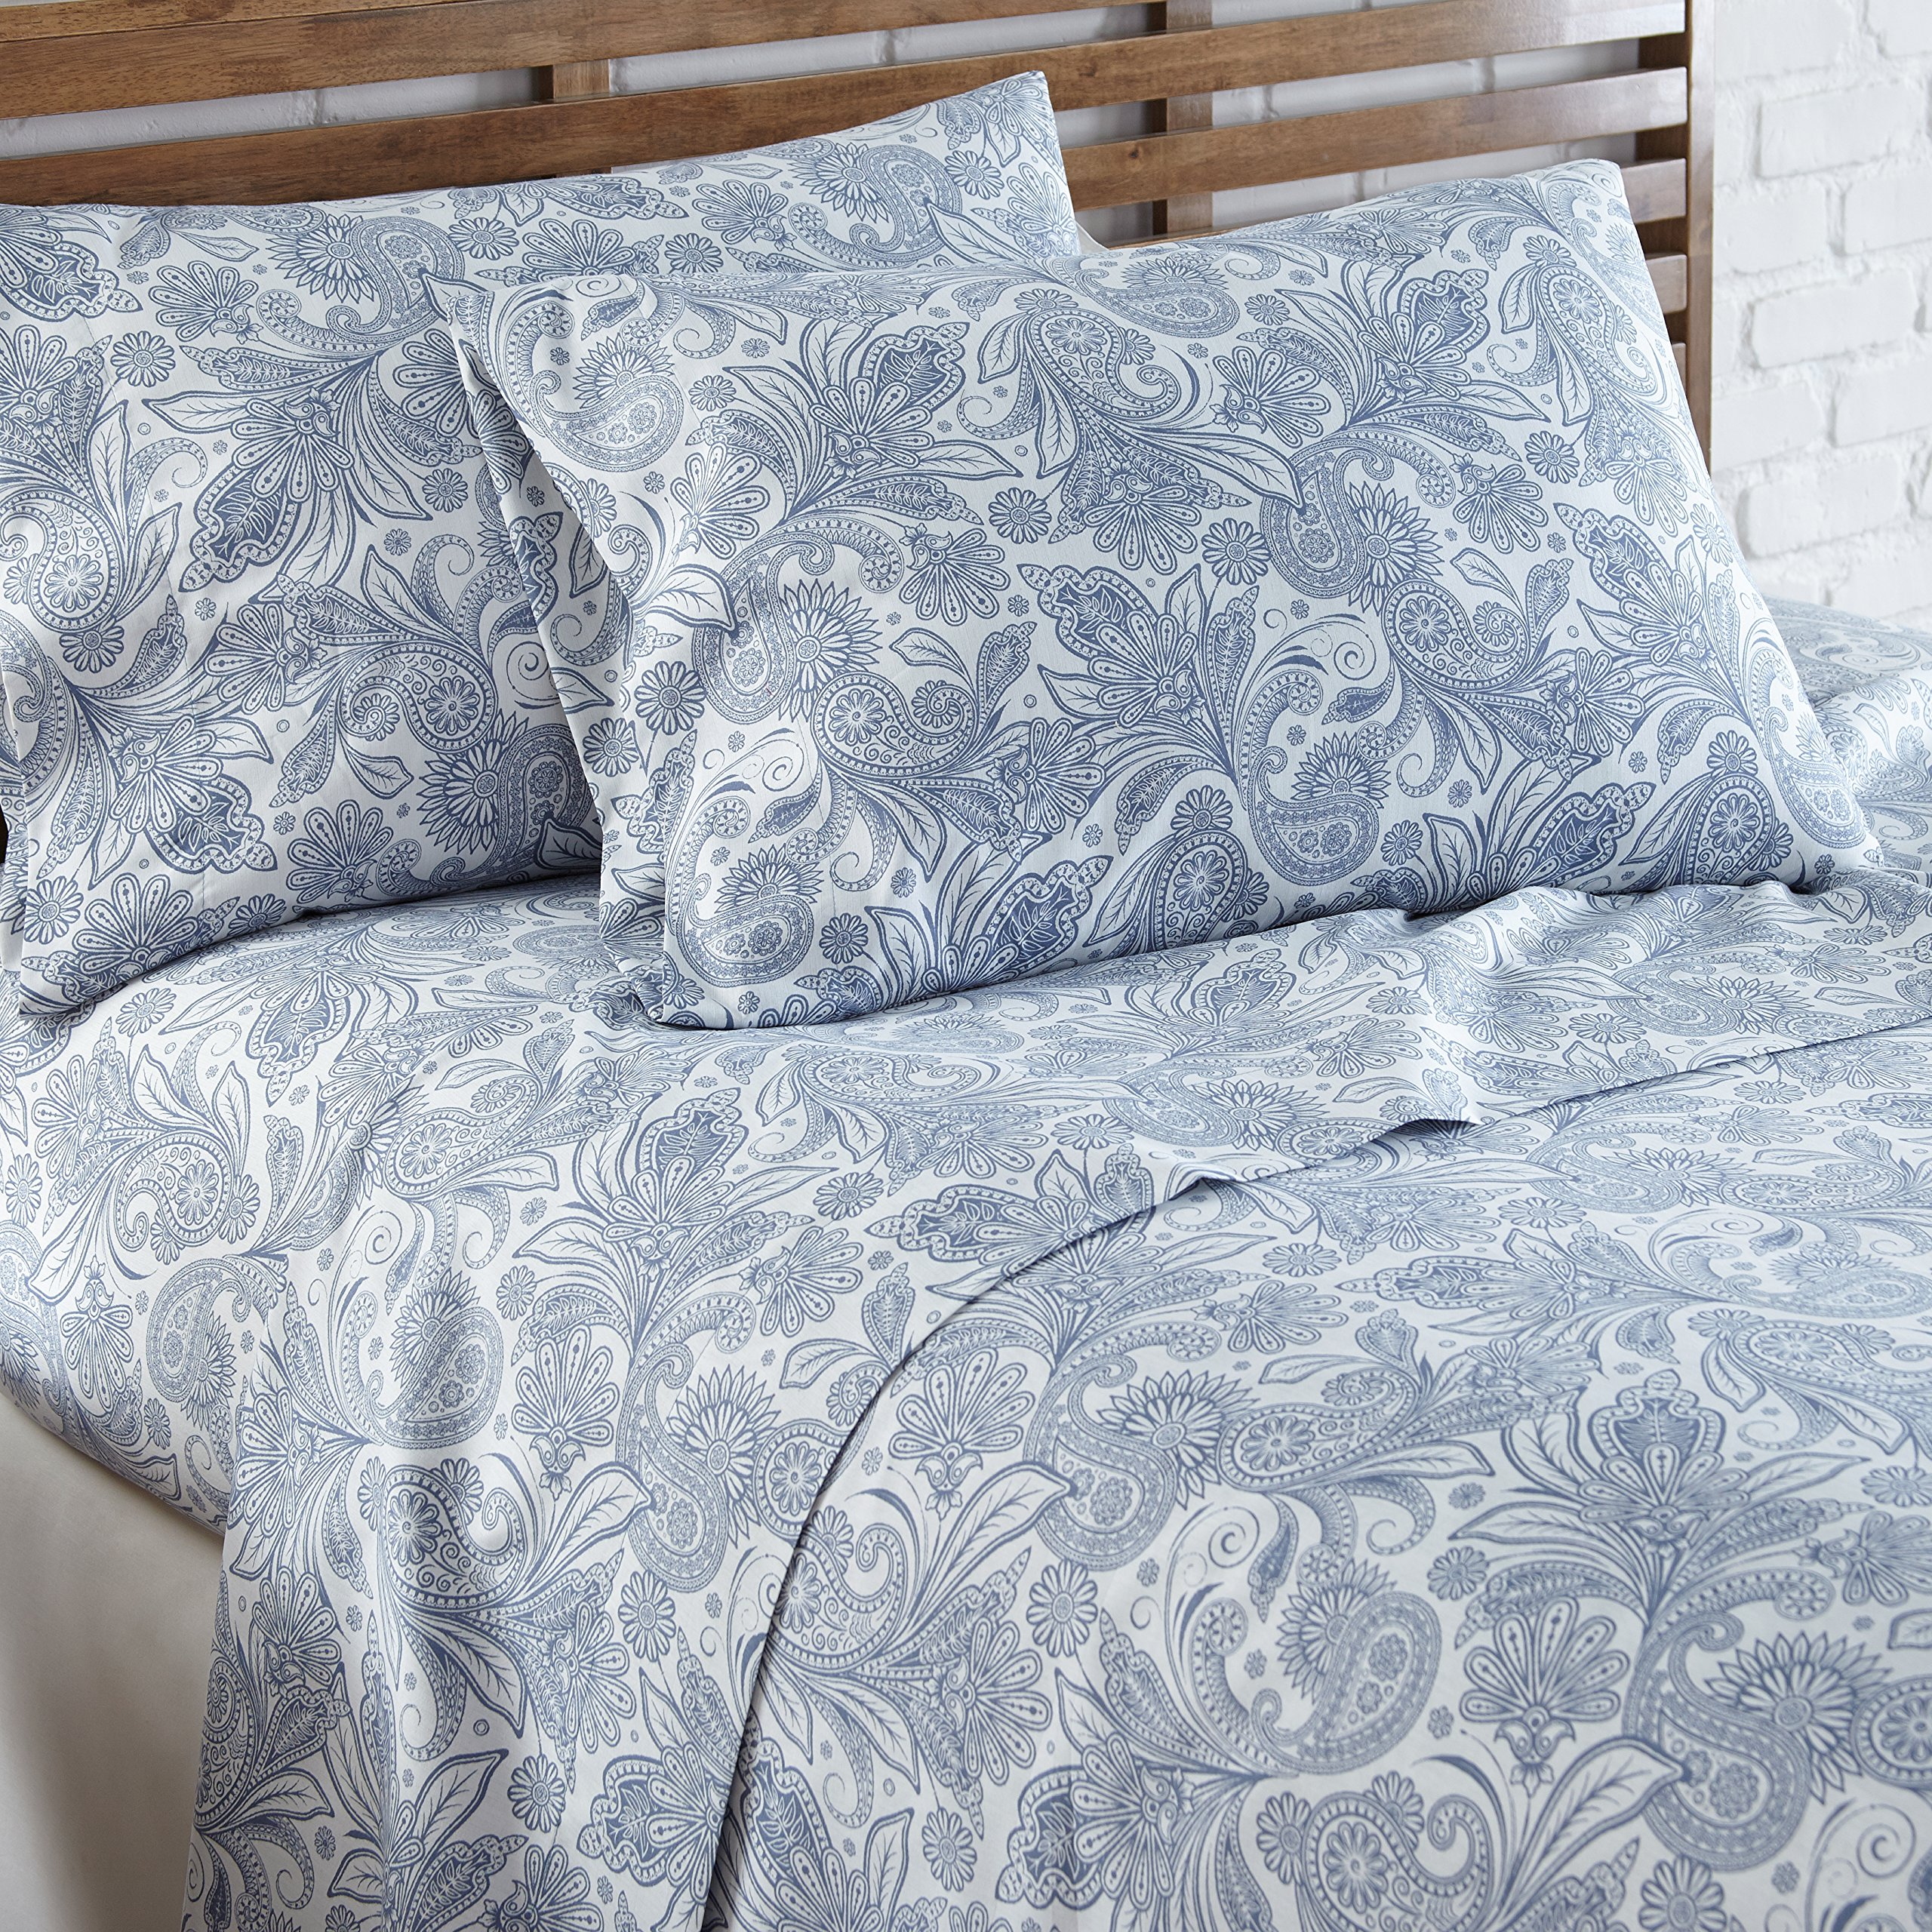 Southshore Fine Linens - Perfect Paisley Boho Collection 4 Piece Sheet Sets, Full, White with Blue Paisley by Southshore Fine Living, Inc. (Image #3)